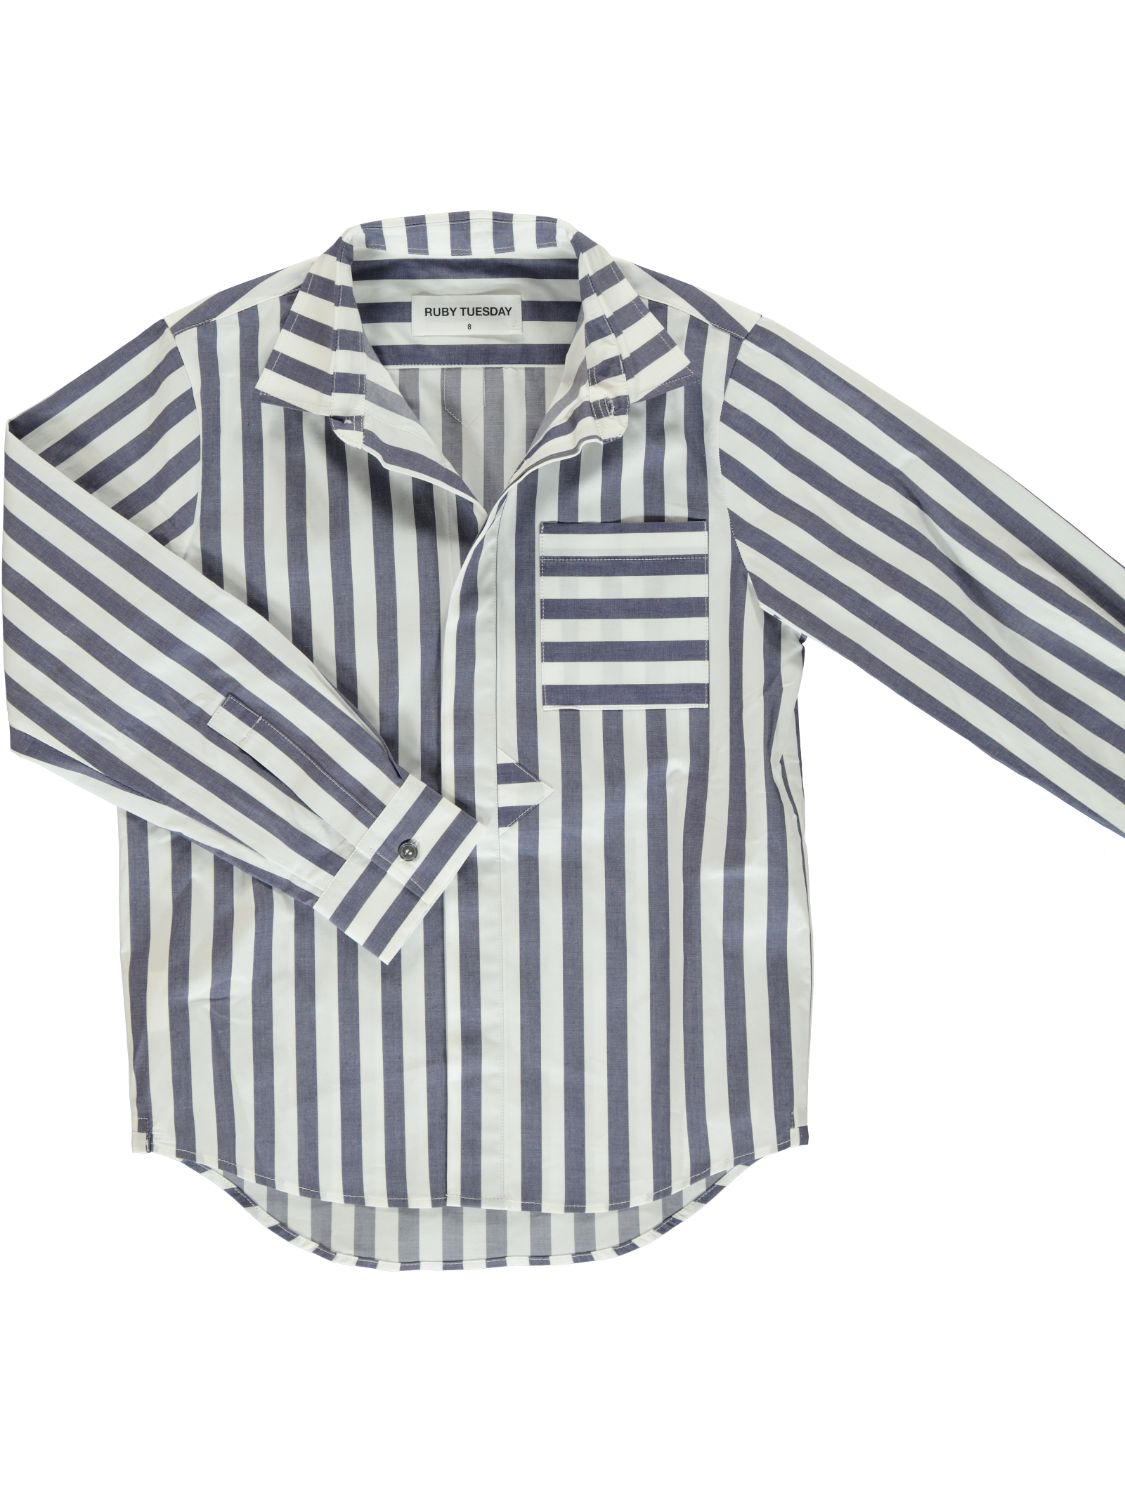 Ruby Tuesday Blouse lange mouw